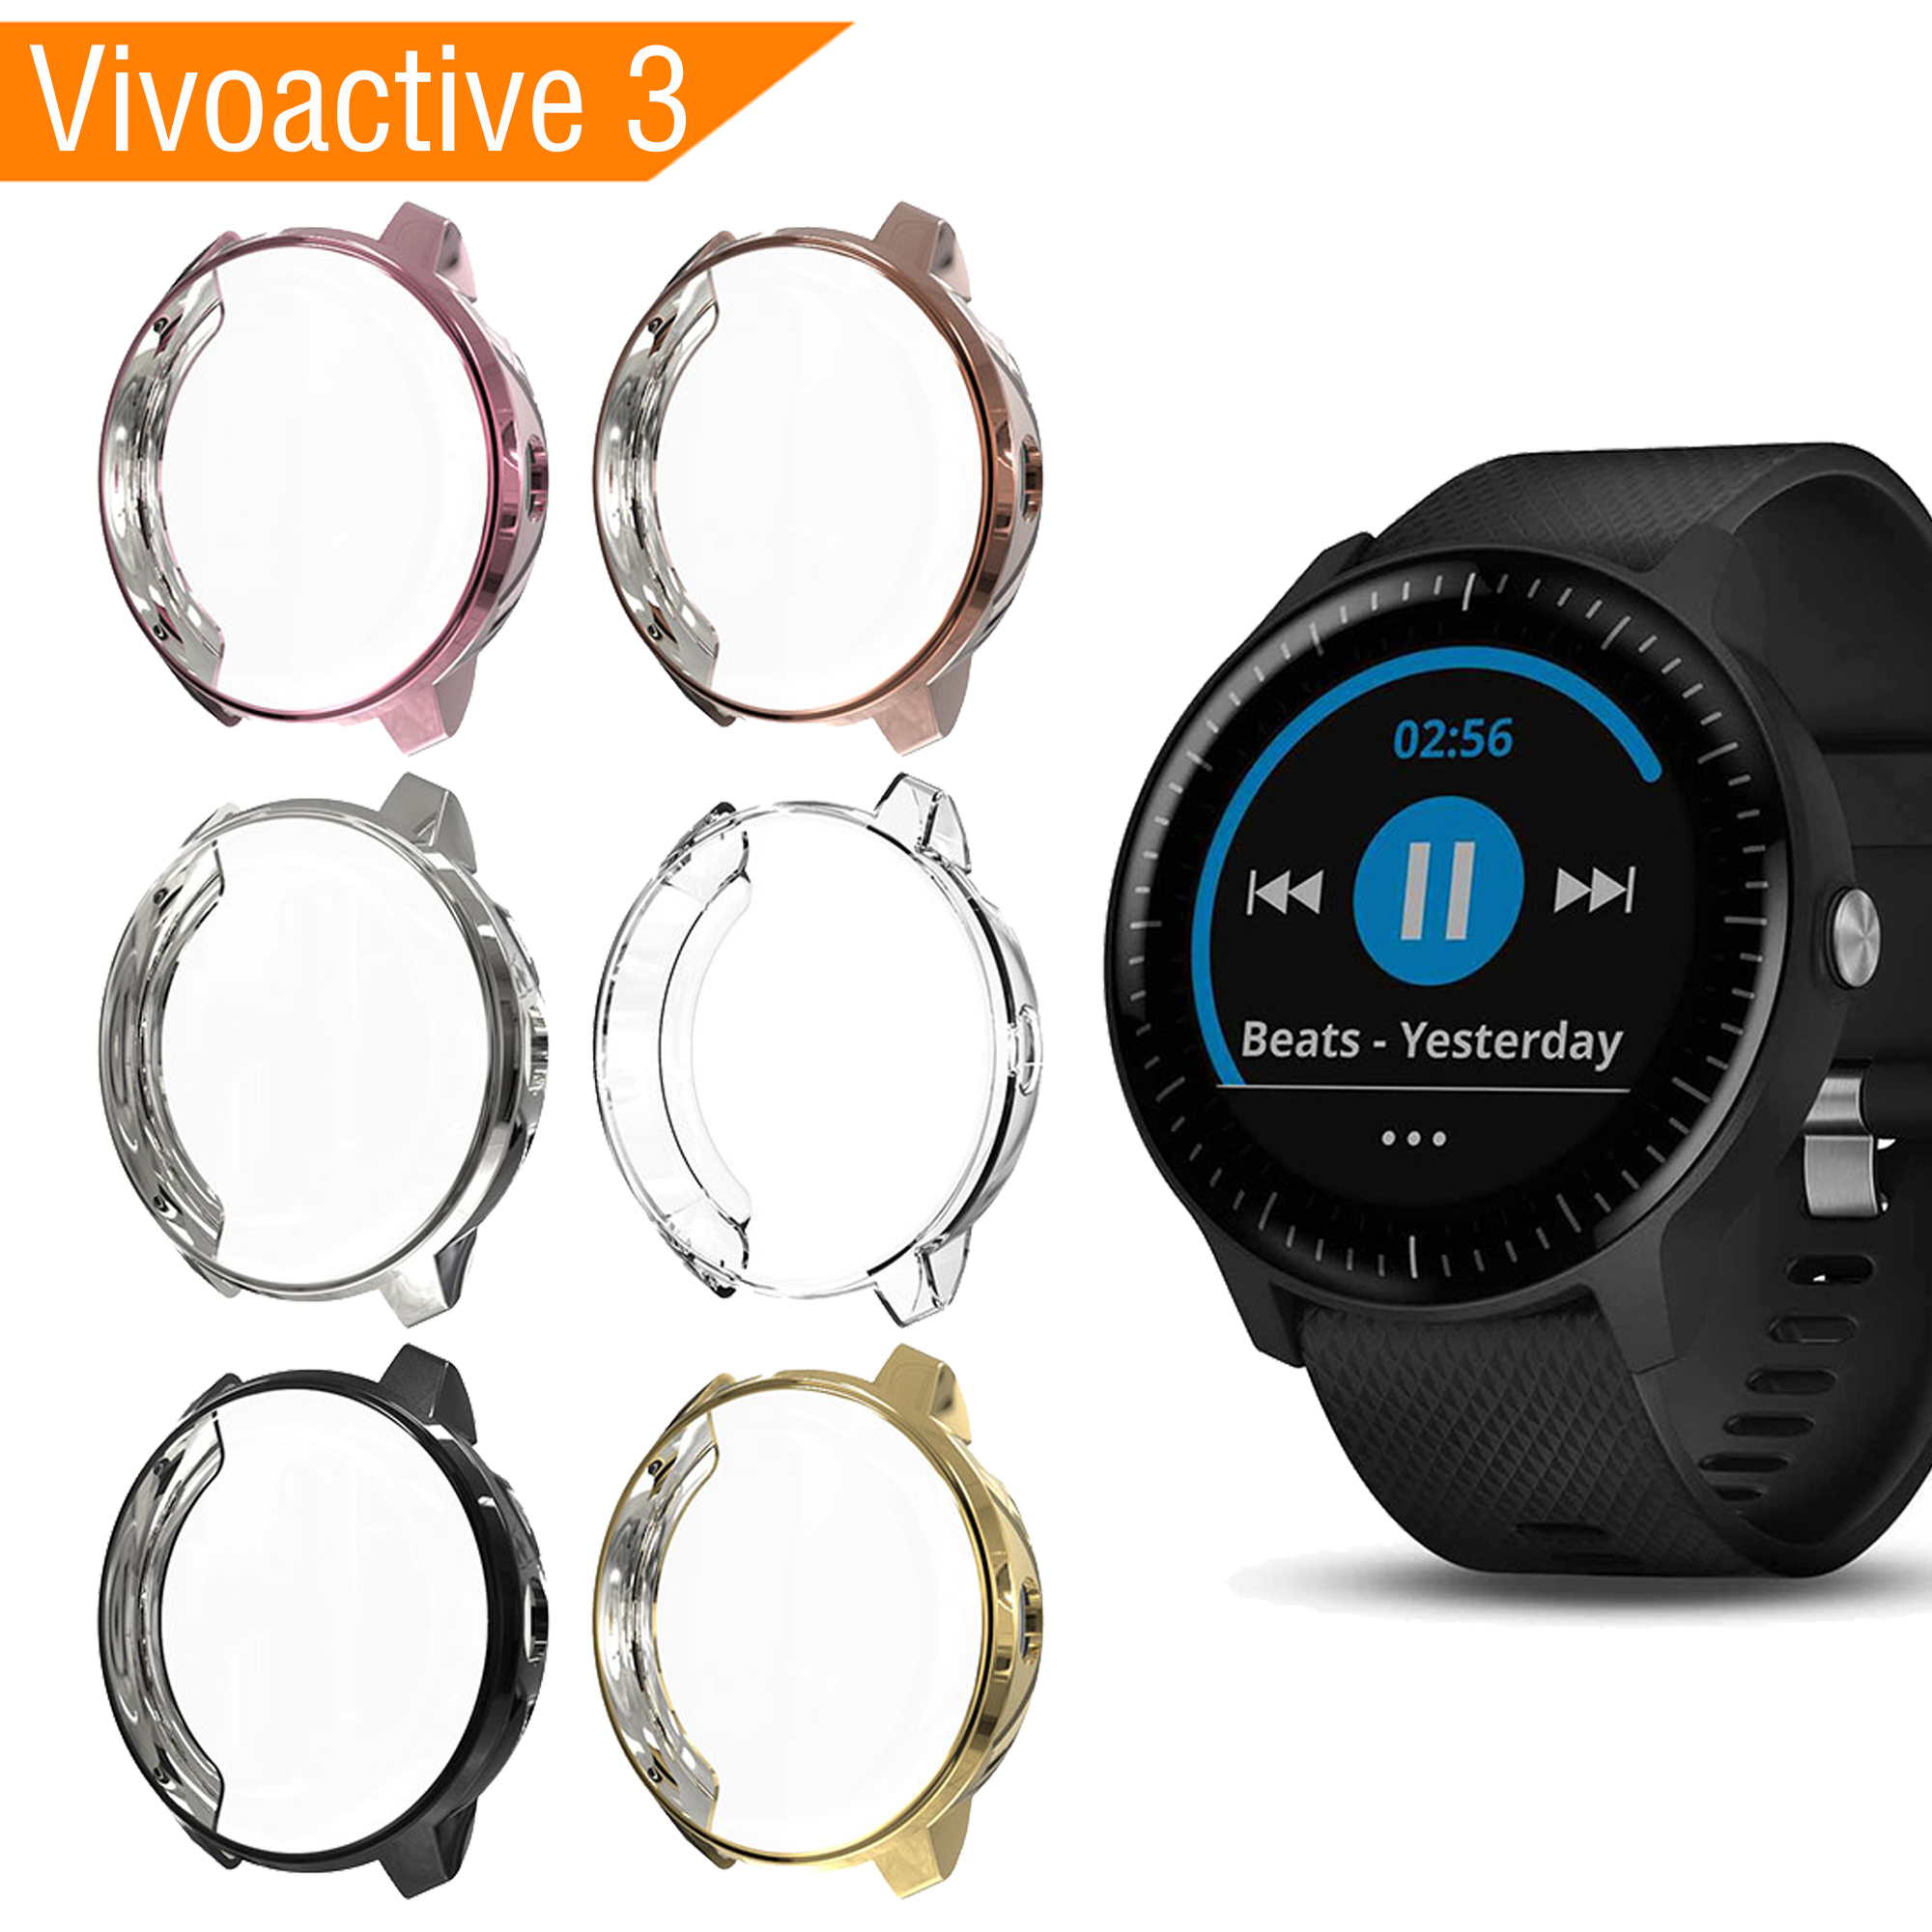 2019 Smart Watch Case For Garmin Vivoactive 3 Full Protection TPU Case For Garmin Vivoactive3 Screen Protector For Vivoactive 3